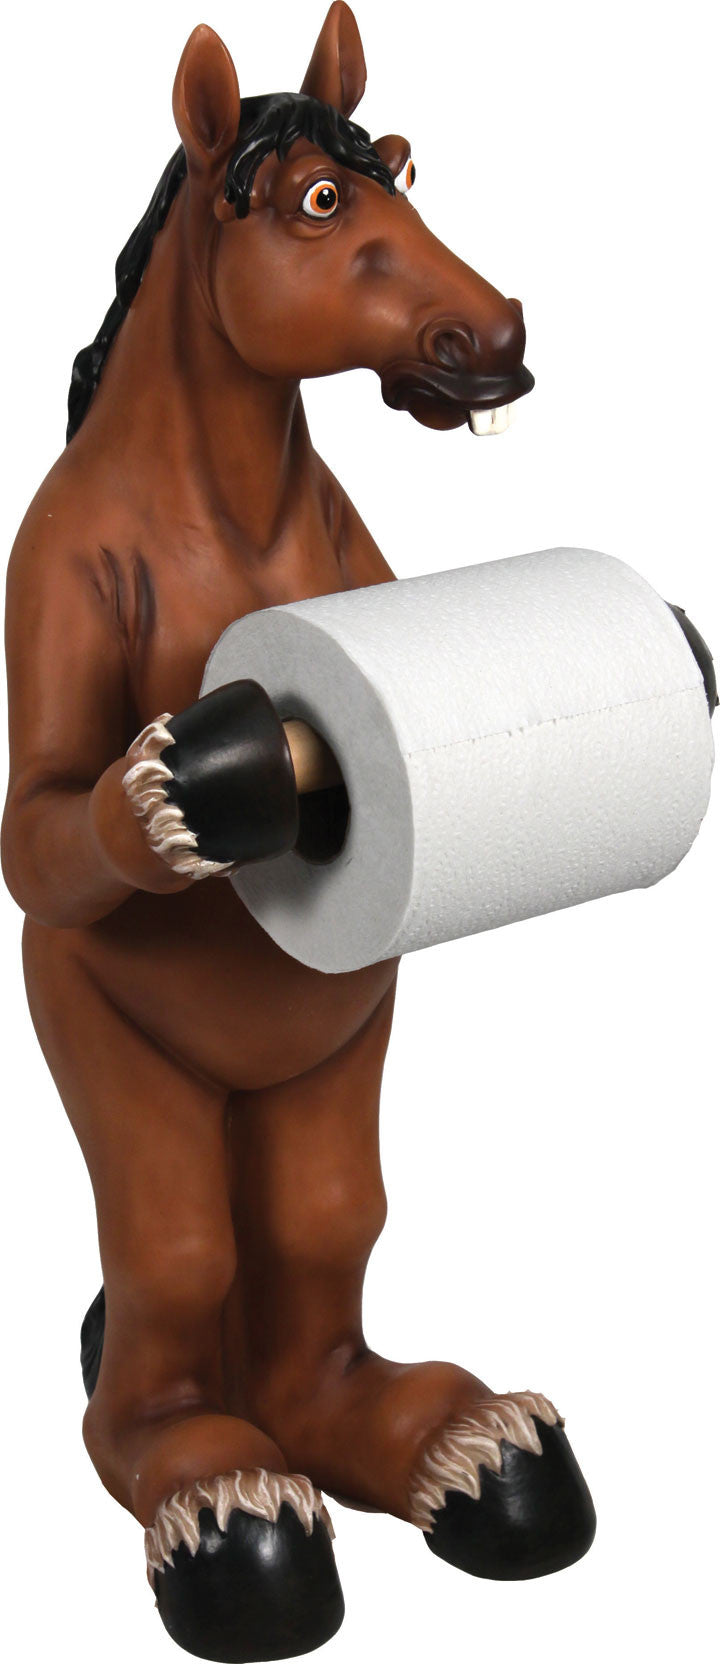 Standing Horse Toilet Paper Holder - GrayGoose Products Limited